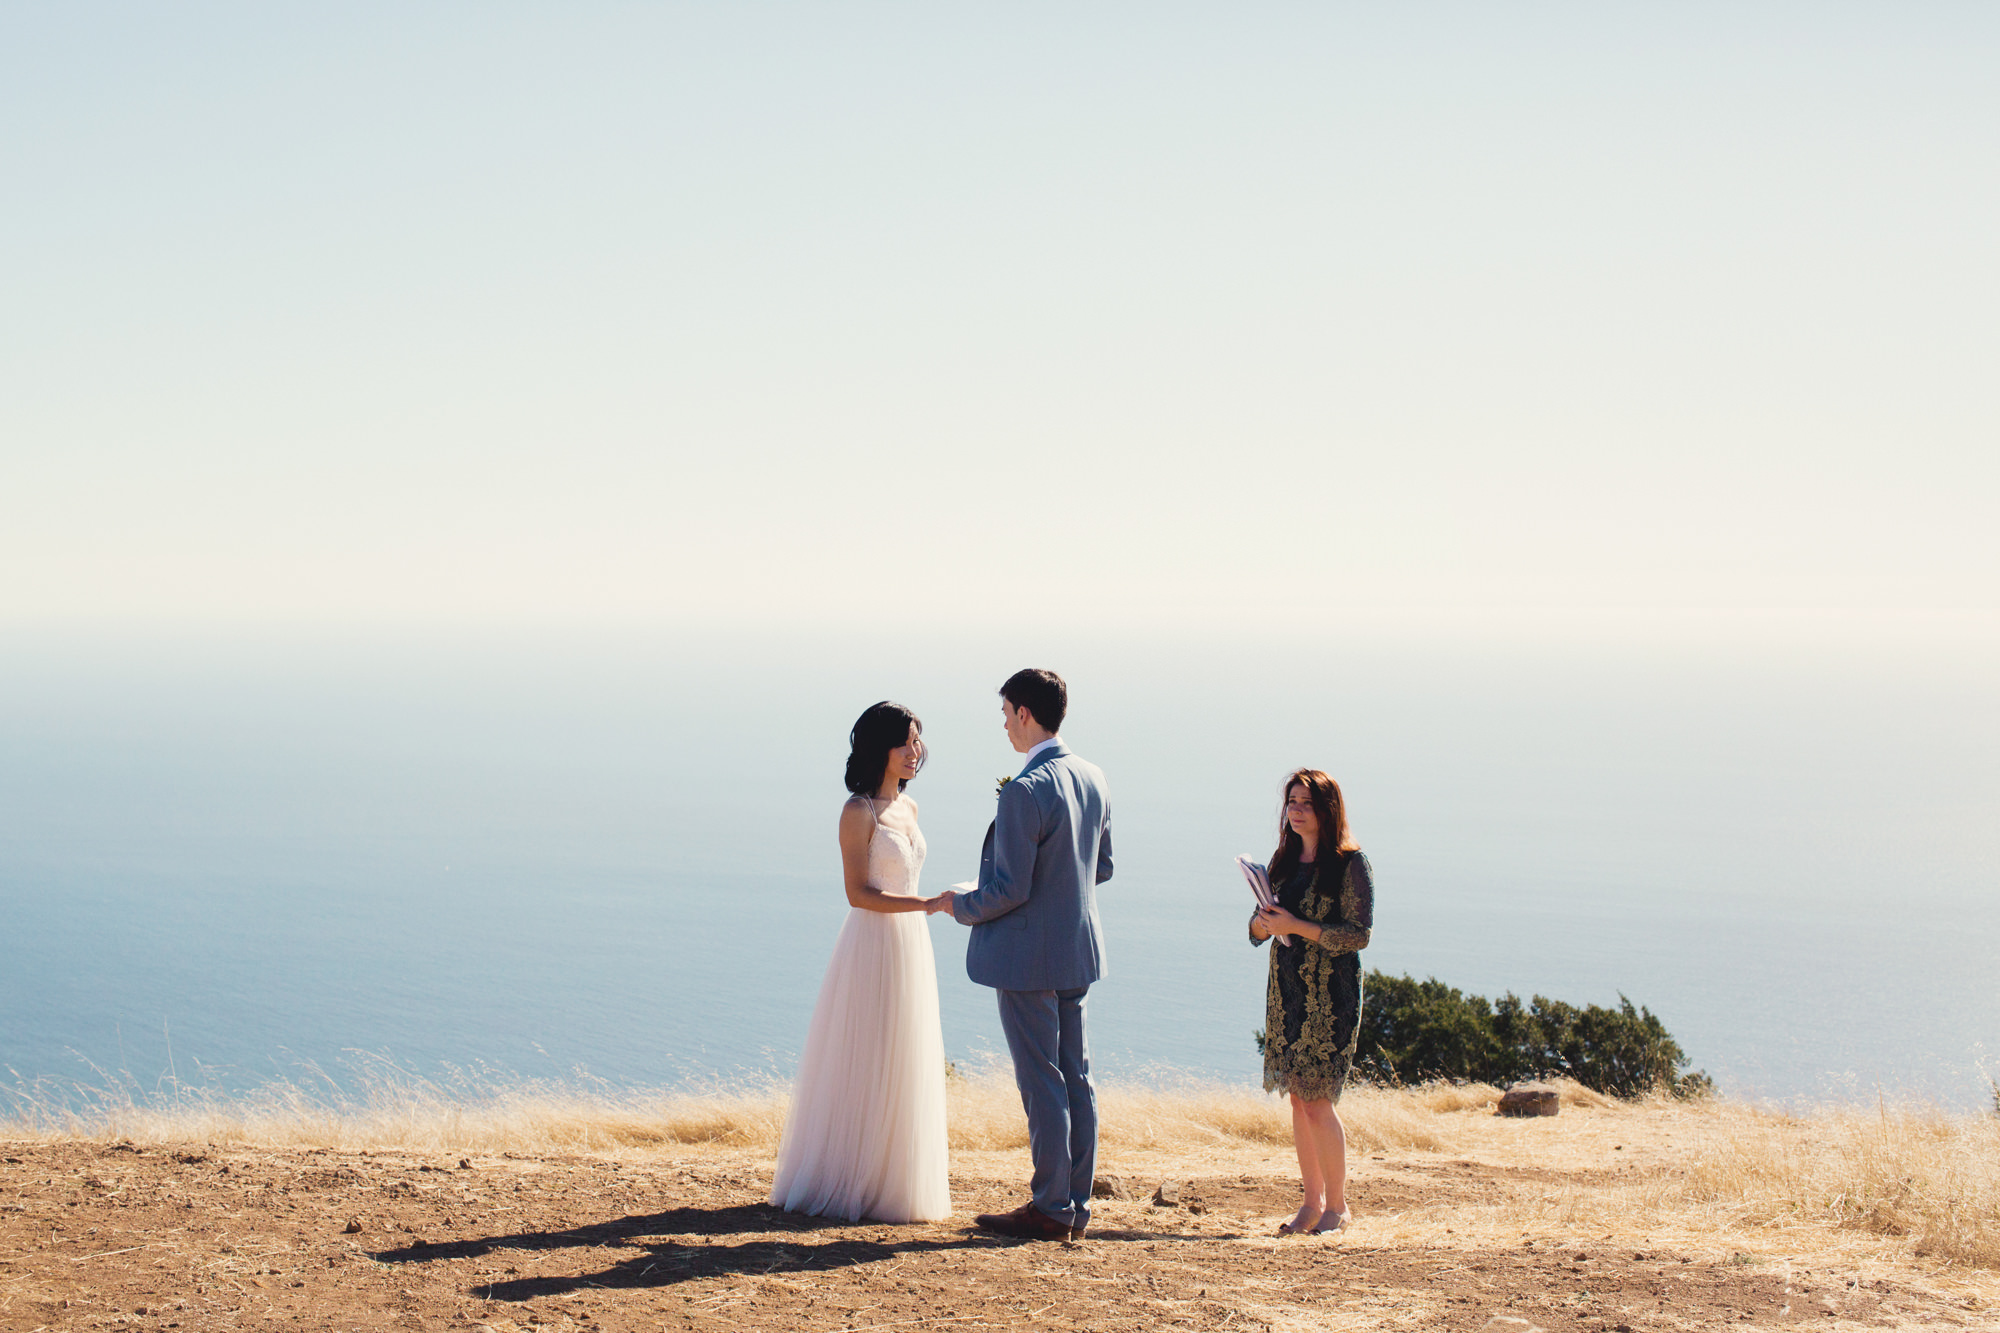 Wedding in Mount Tamalpais